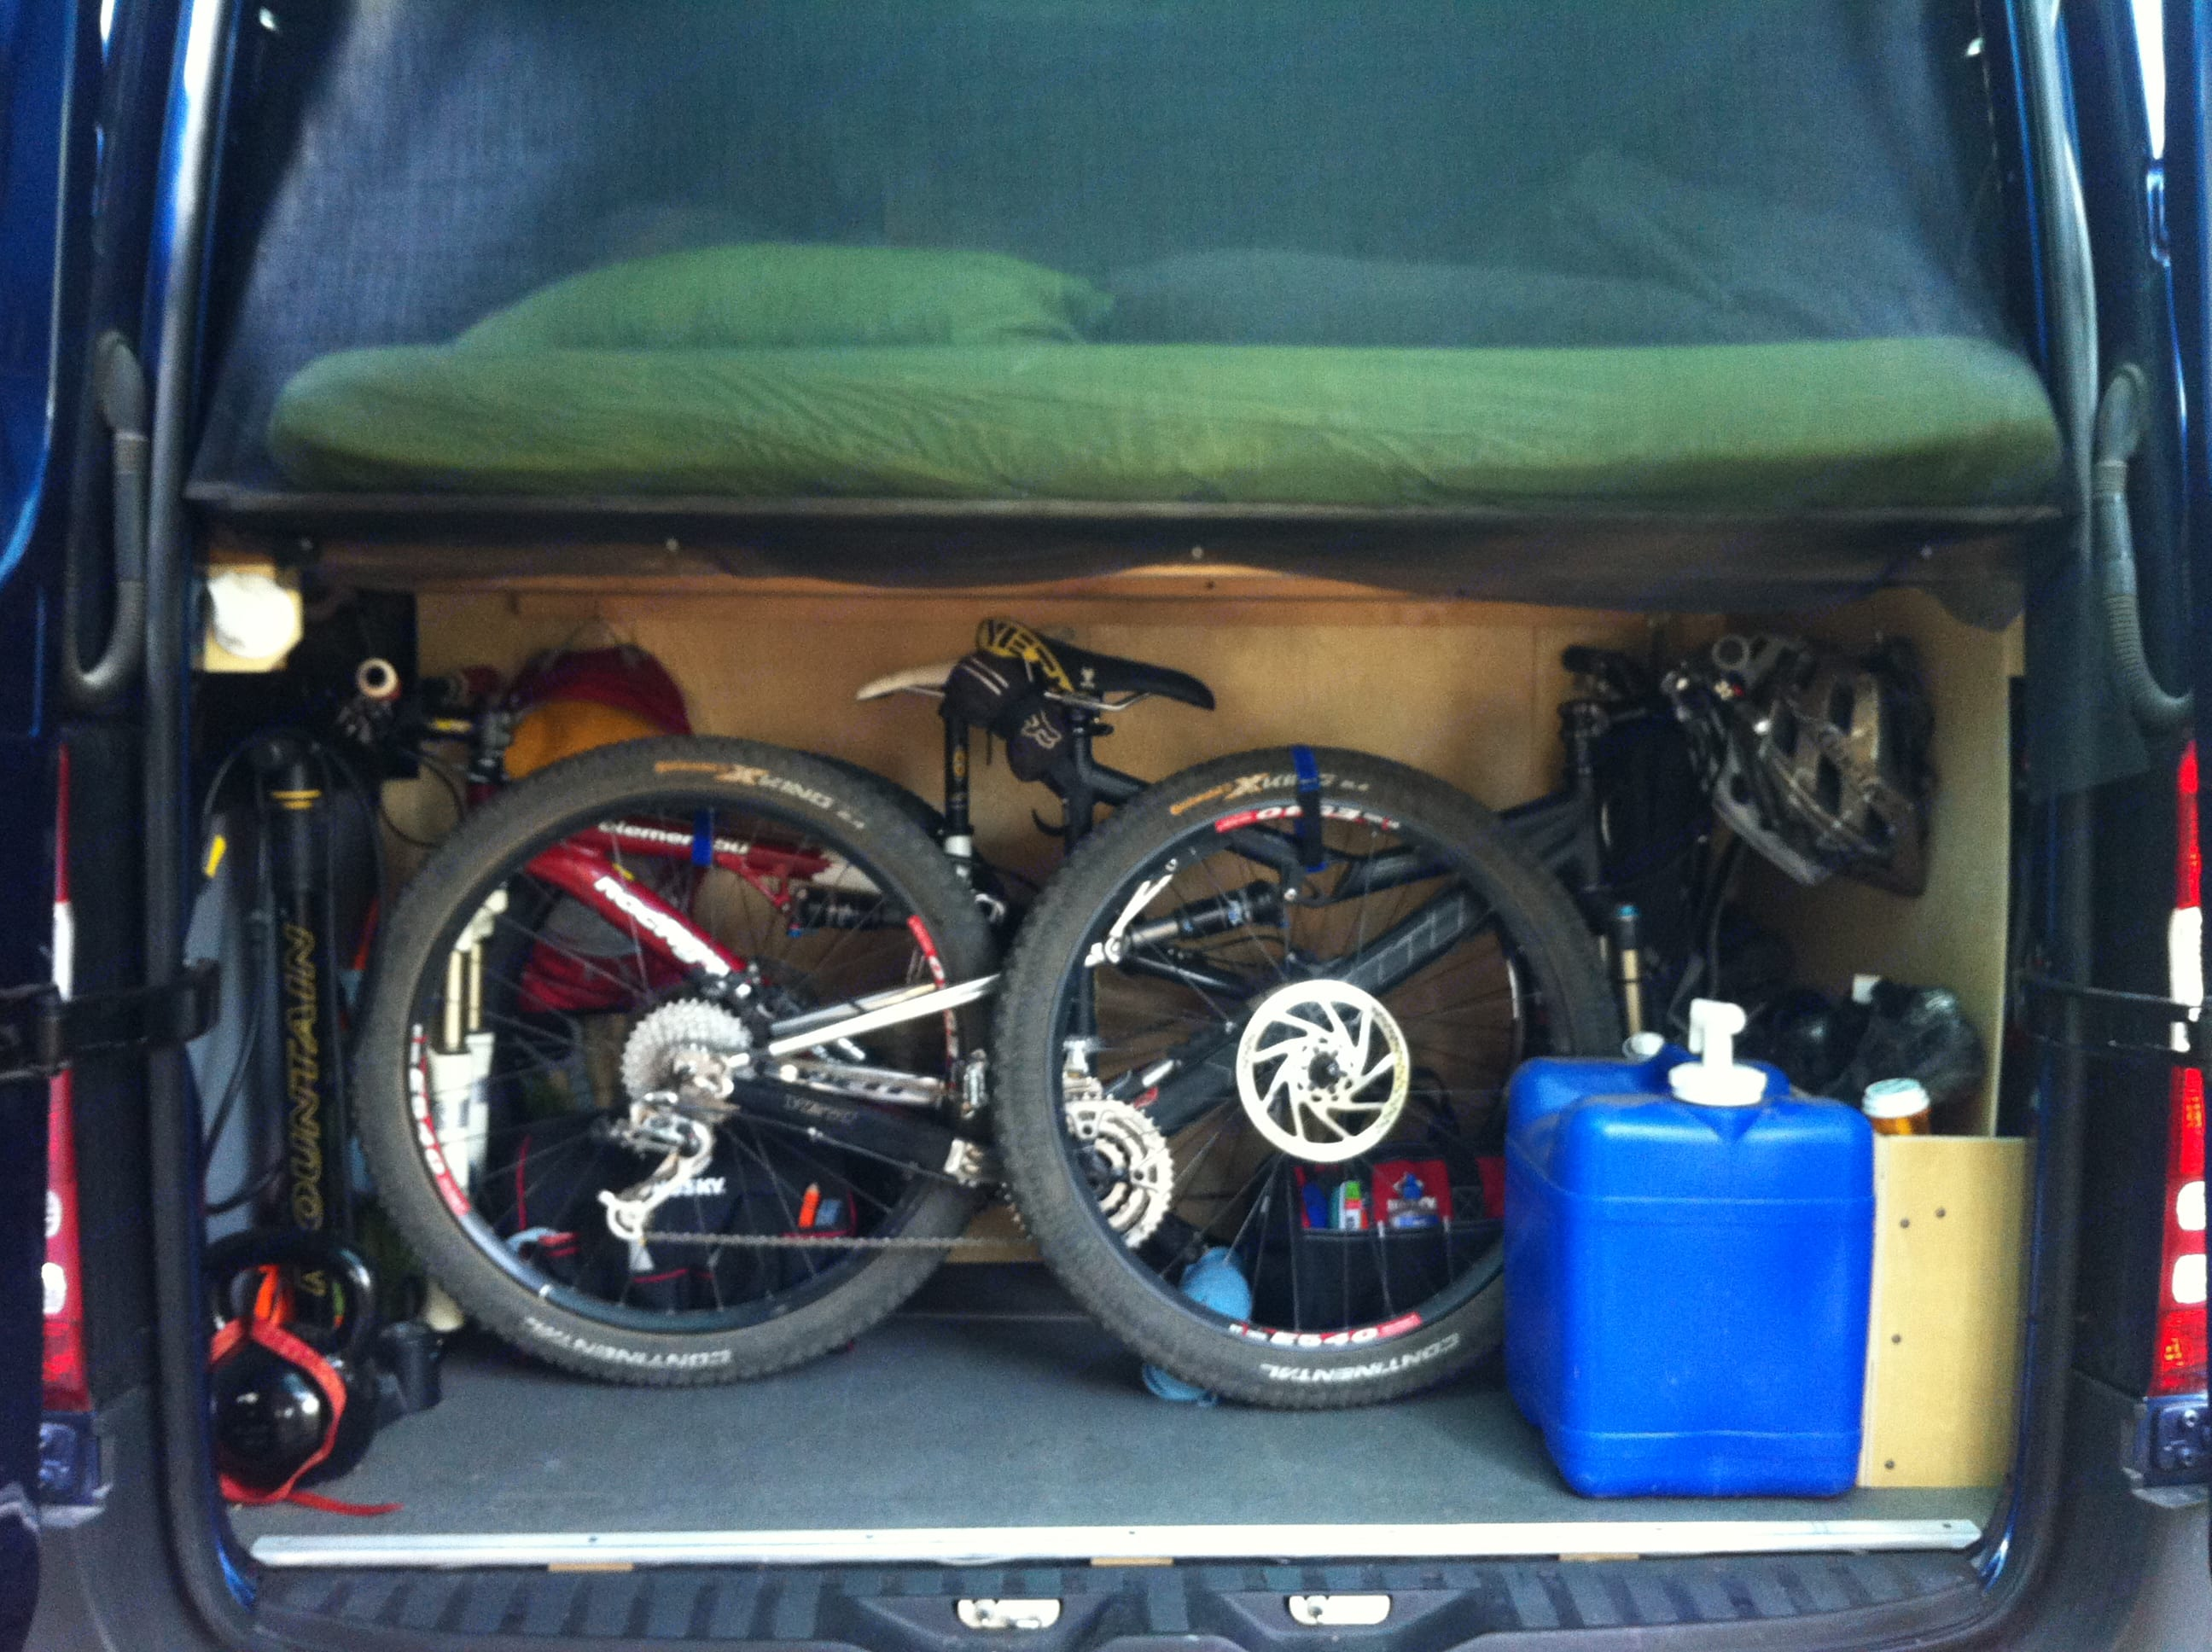 """You can access the """"garage"""" via the back doors or sliding doors from inside.  Plenty of room for bikes or other gear that you don't want in your way. . mercedes Sprinter 2011"""